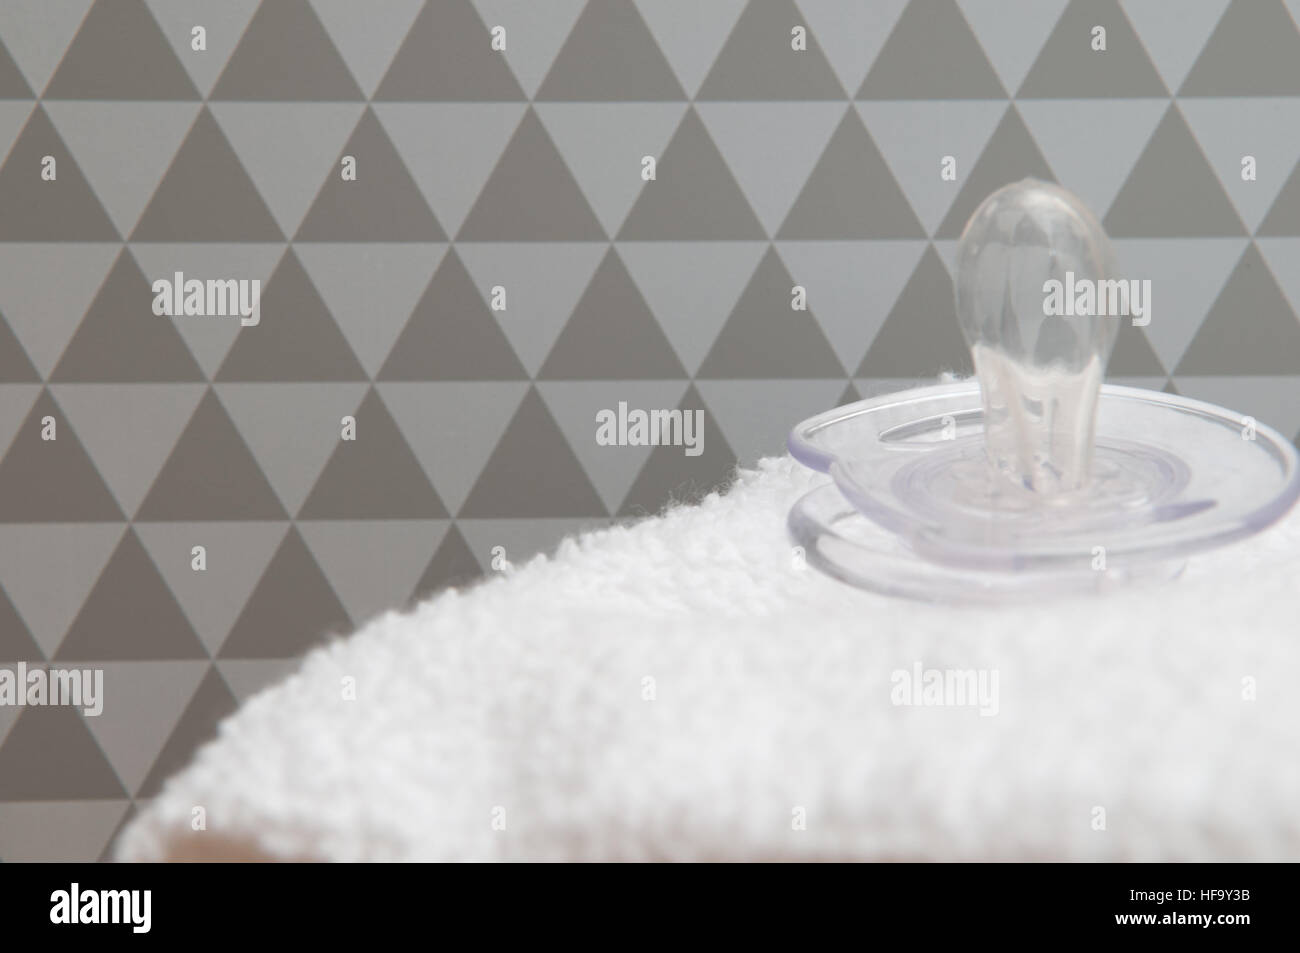 Parenting For Newborn Baby Background Of Dummy On A White Towel Stock Photo Alamy